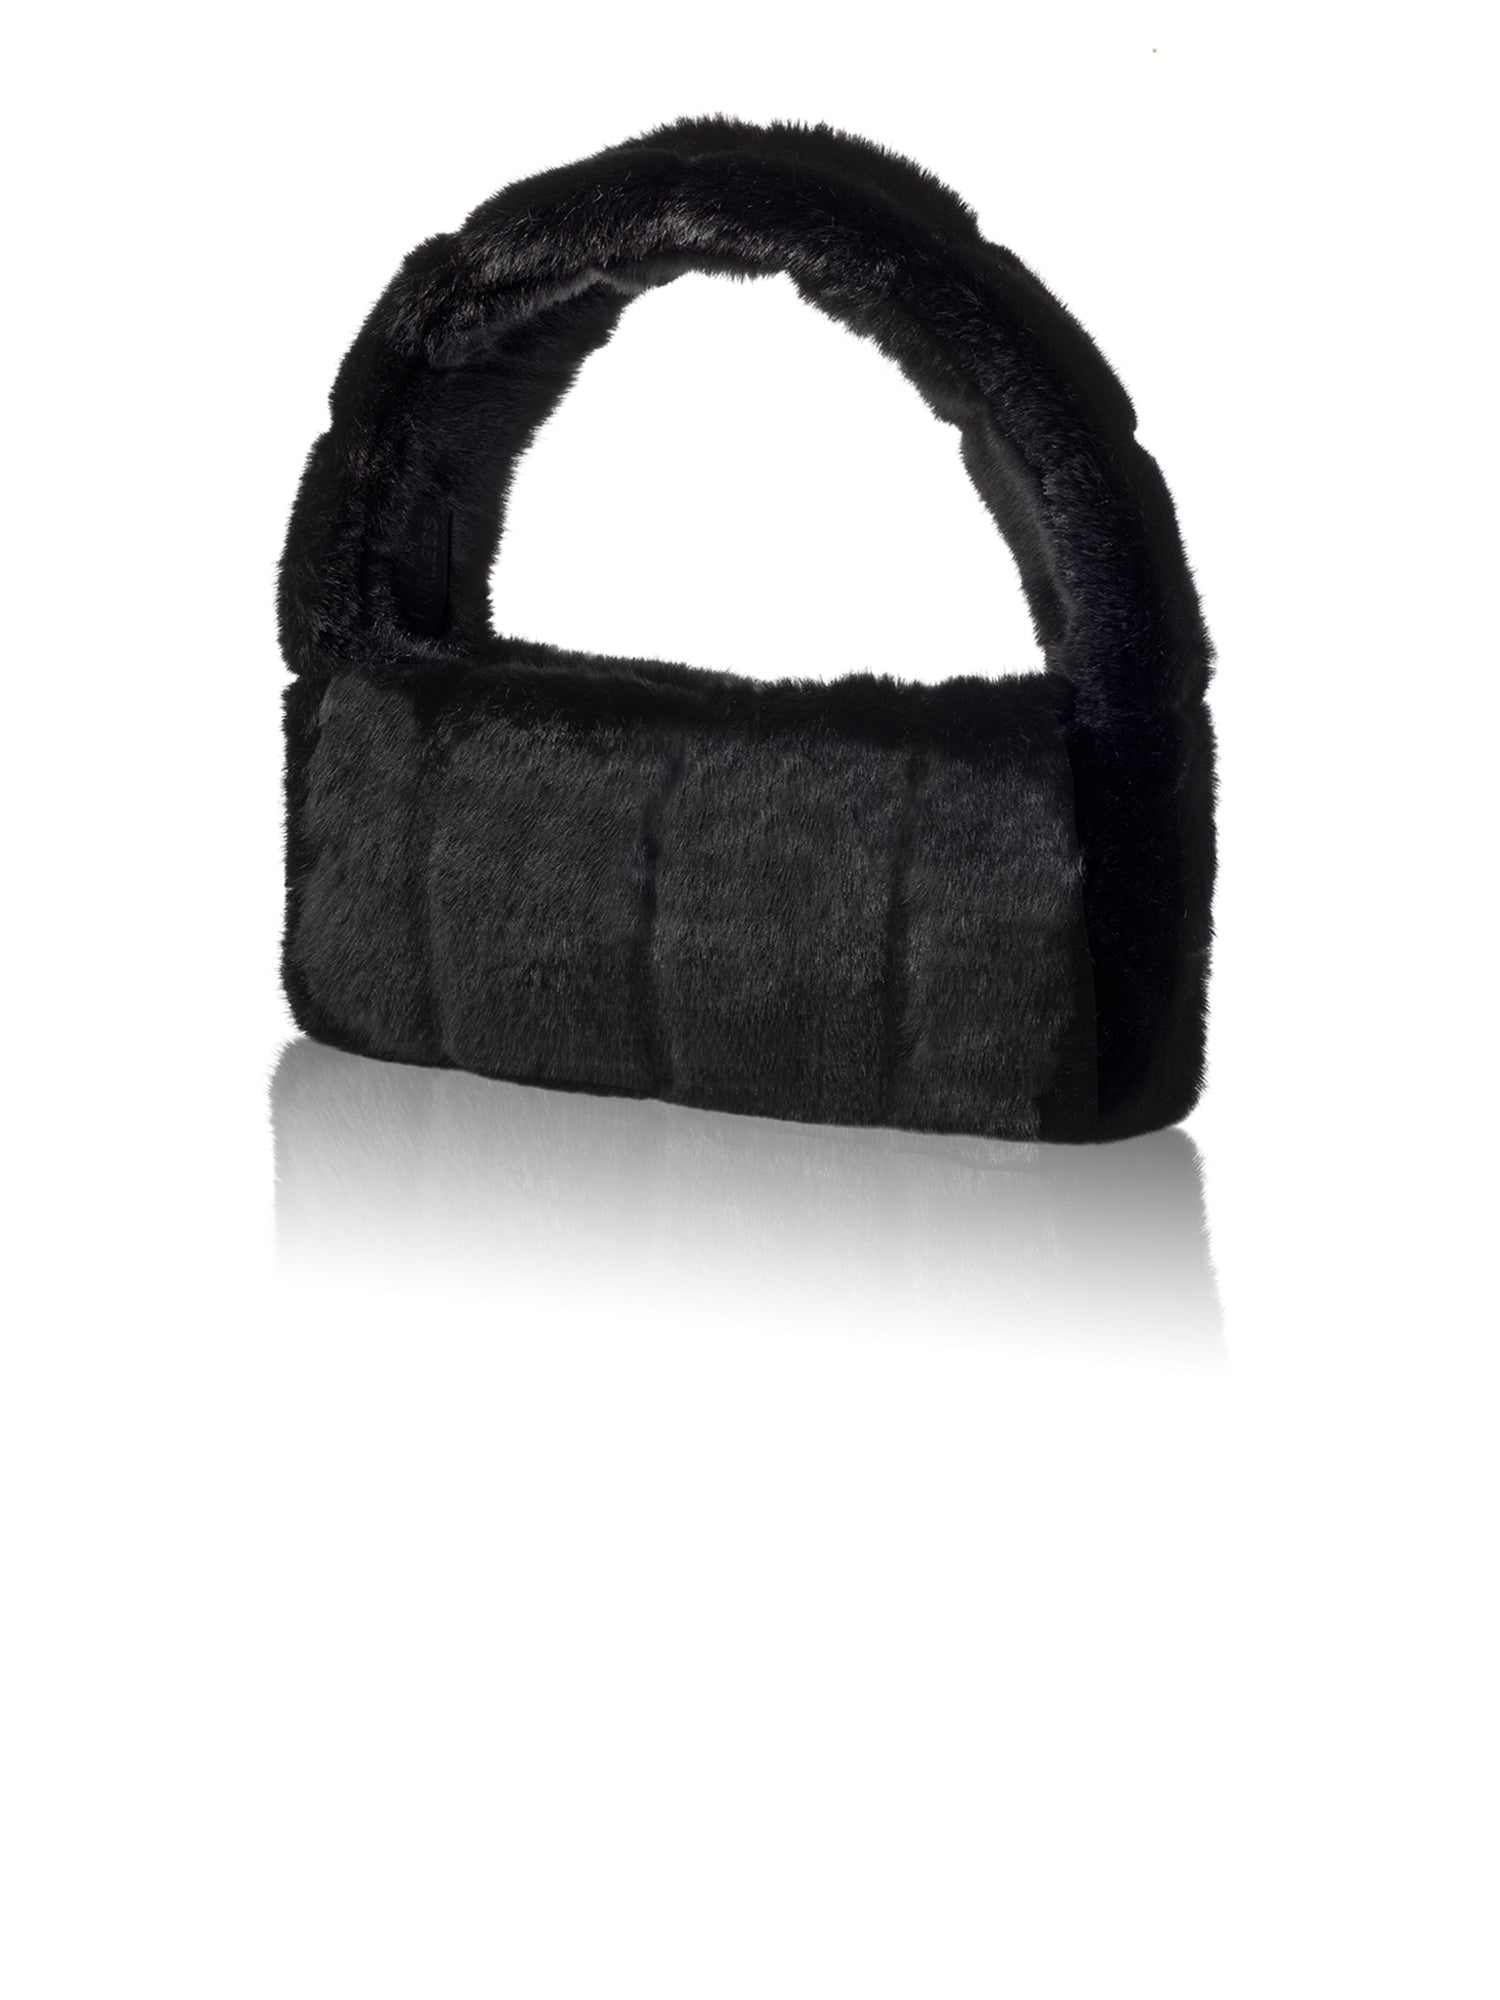 A Packshot Of Marei1998's Pampas Faux Fur Handbag In Black Color. Featuring Narrow Silhouette And Short Strap. A Chic Upgrade To Any Outfit. Front View.